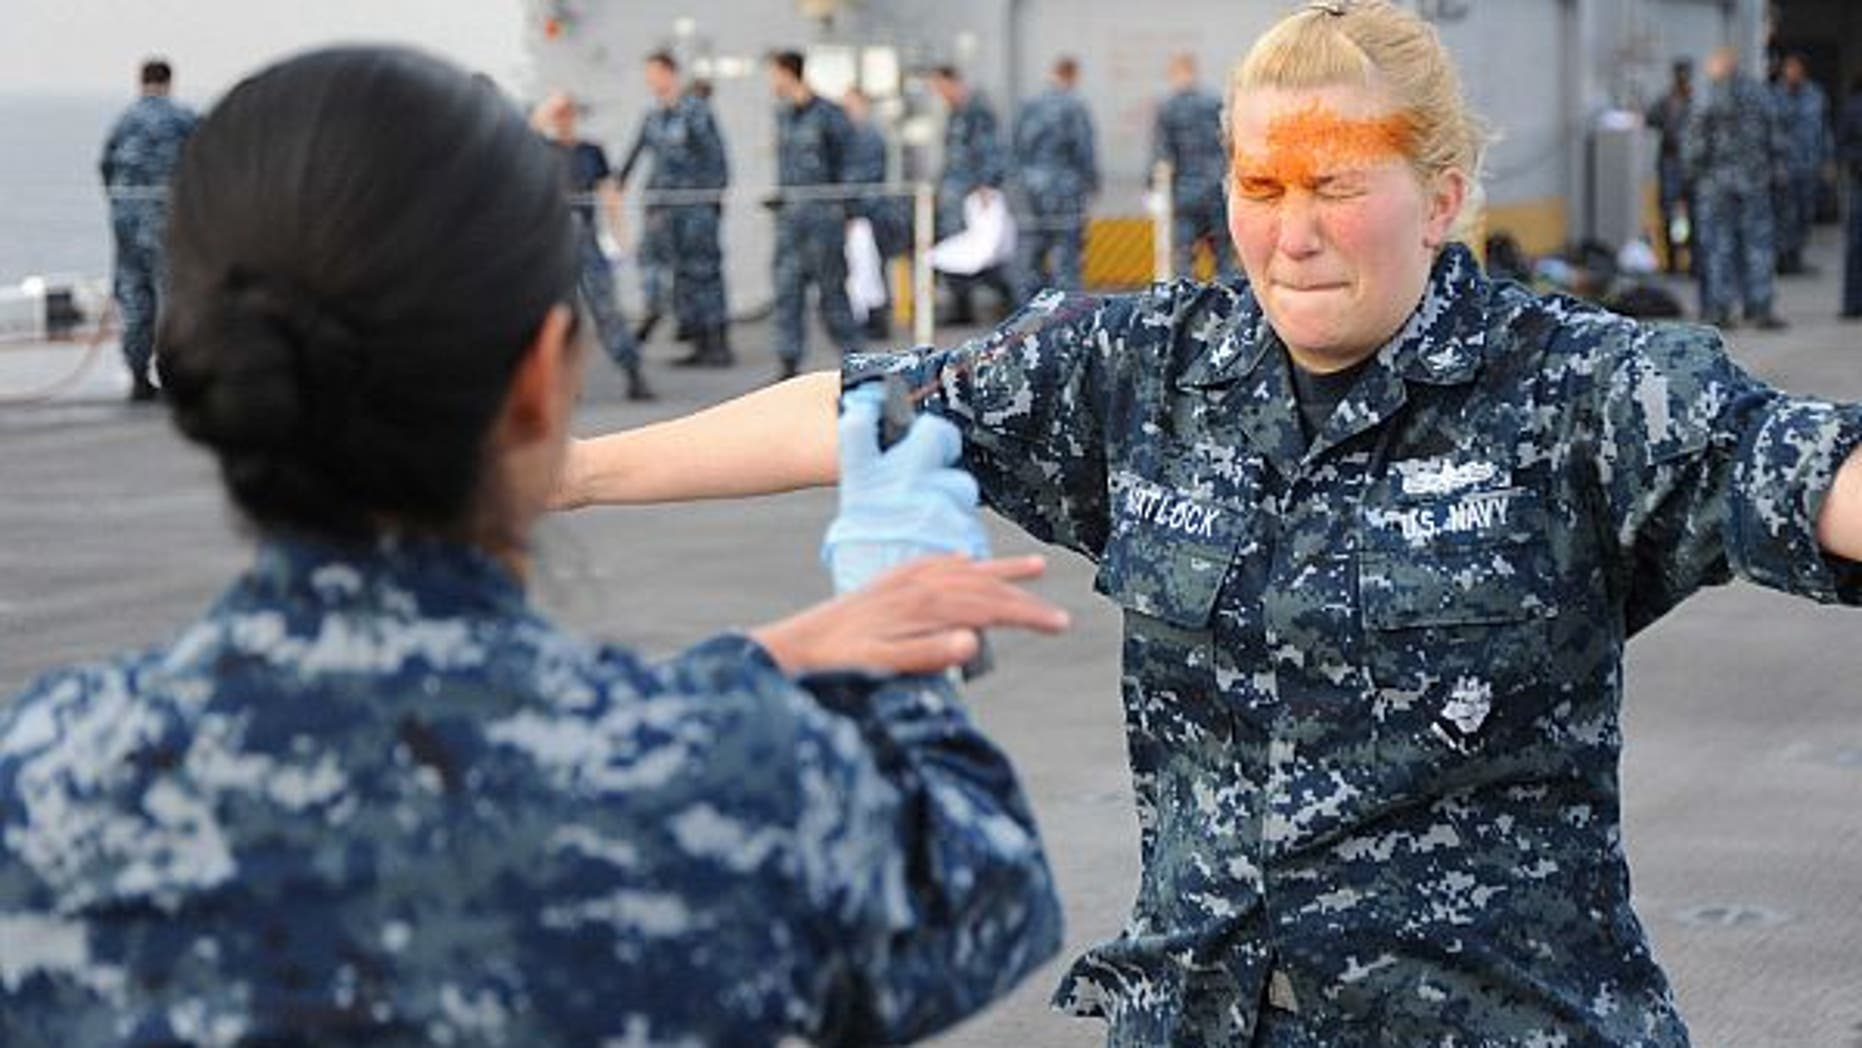 Master-at-Arms 1st Class Cathy Garcia sprays pepper spray into the eyes of Electronics Technician 3rd Marie Matlock.